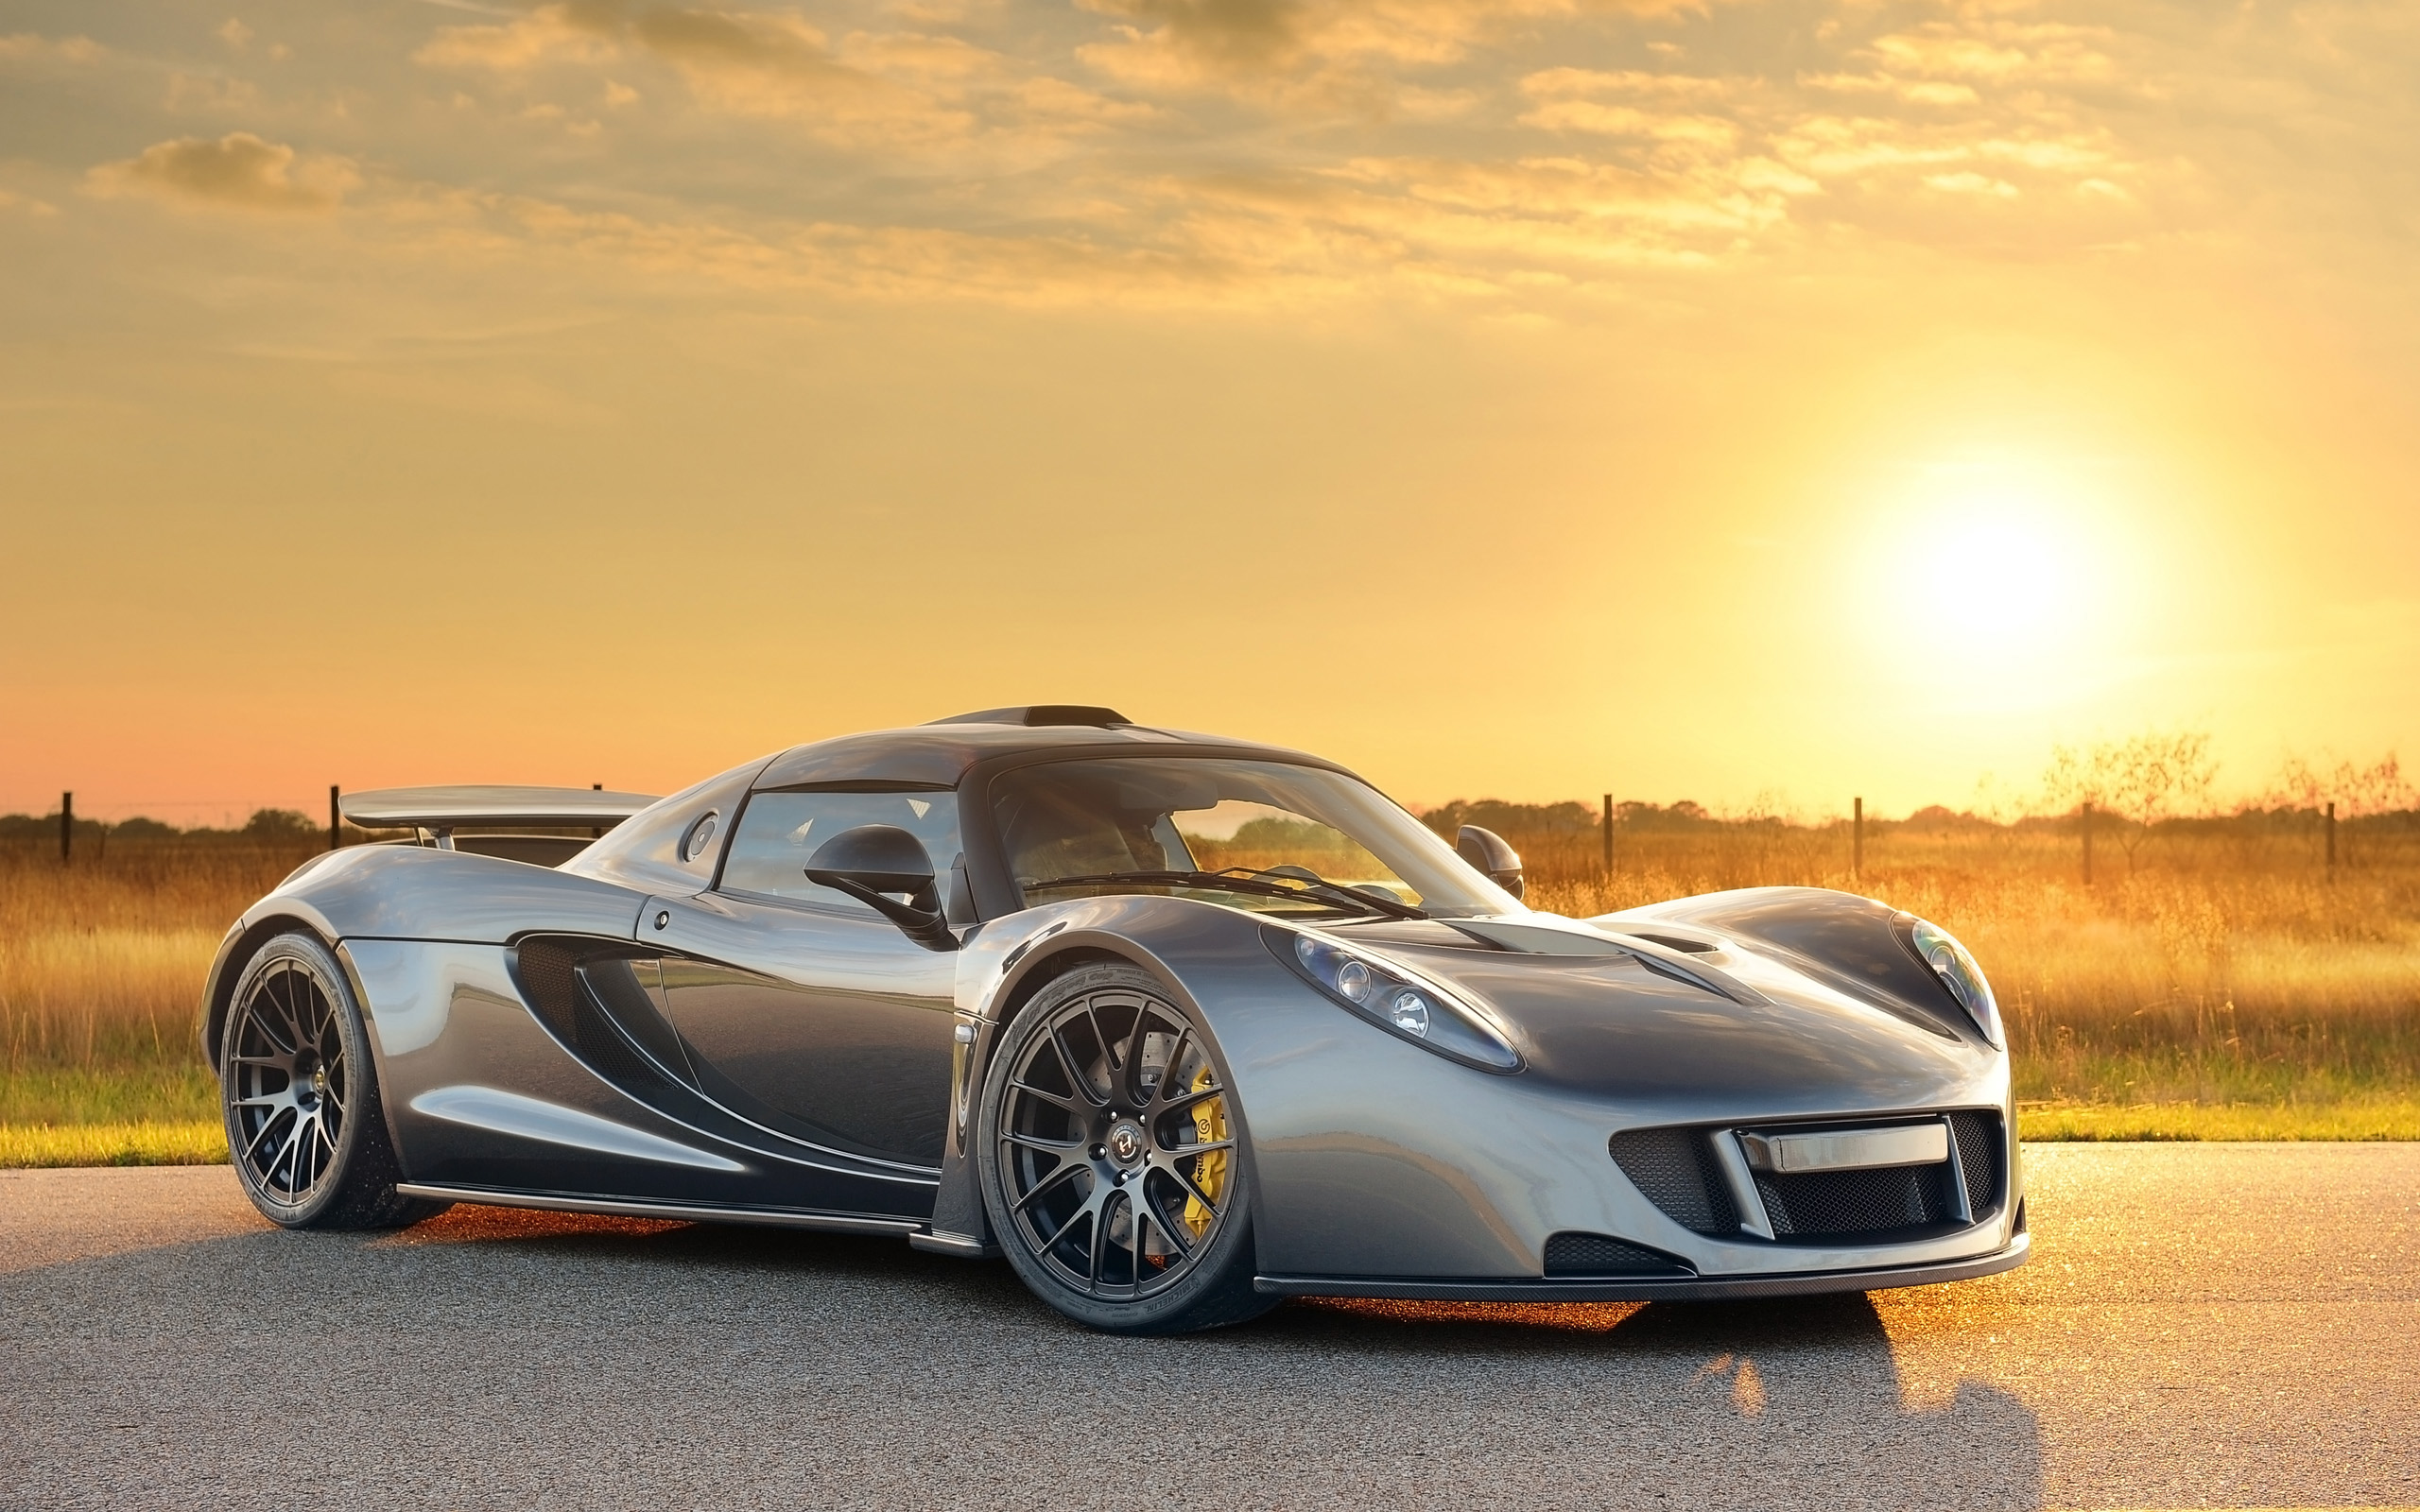 hd hennessey venom gt wallpapers full hd pictures